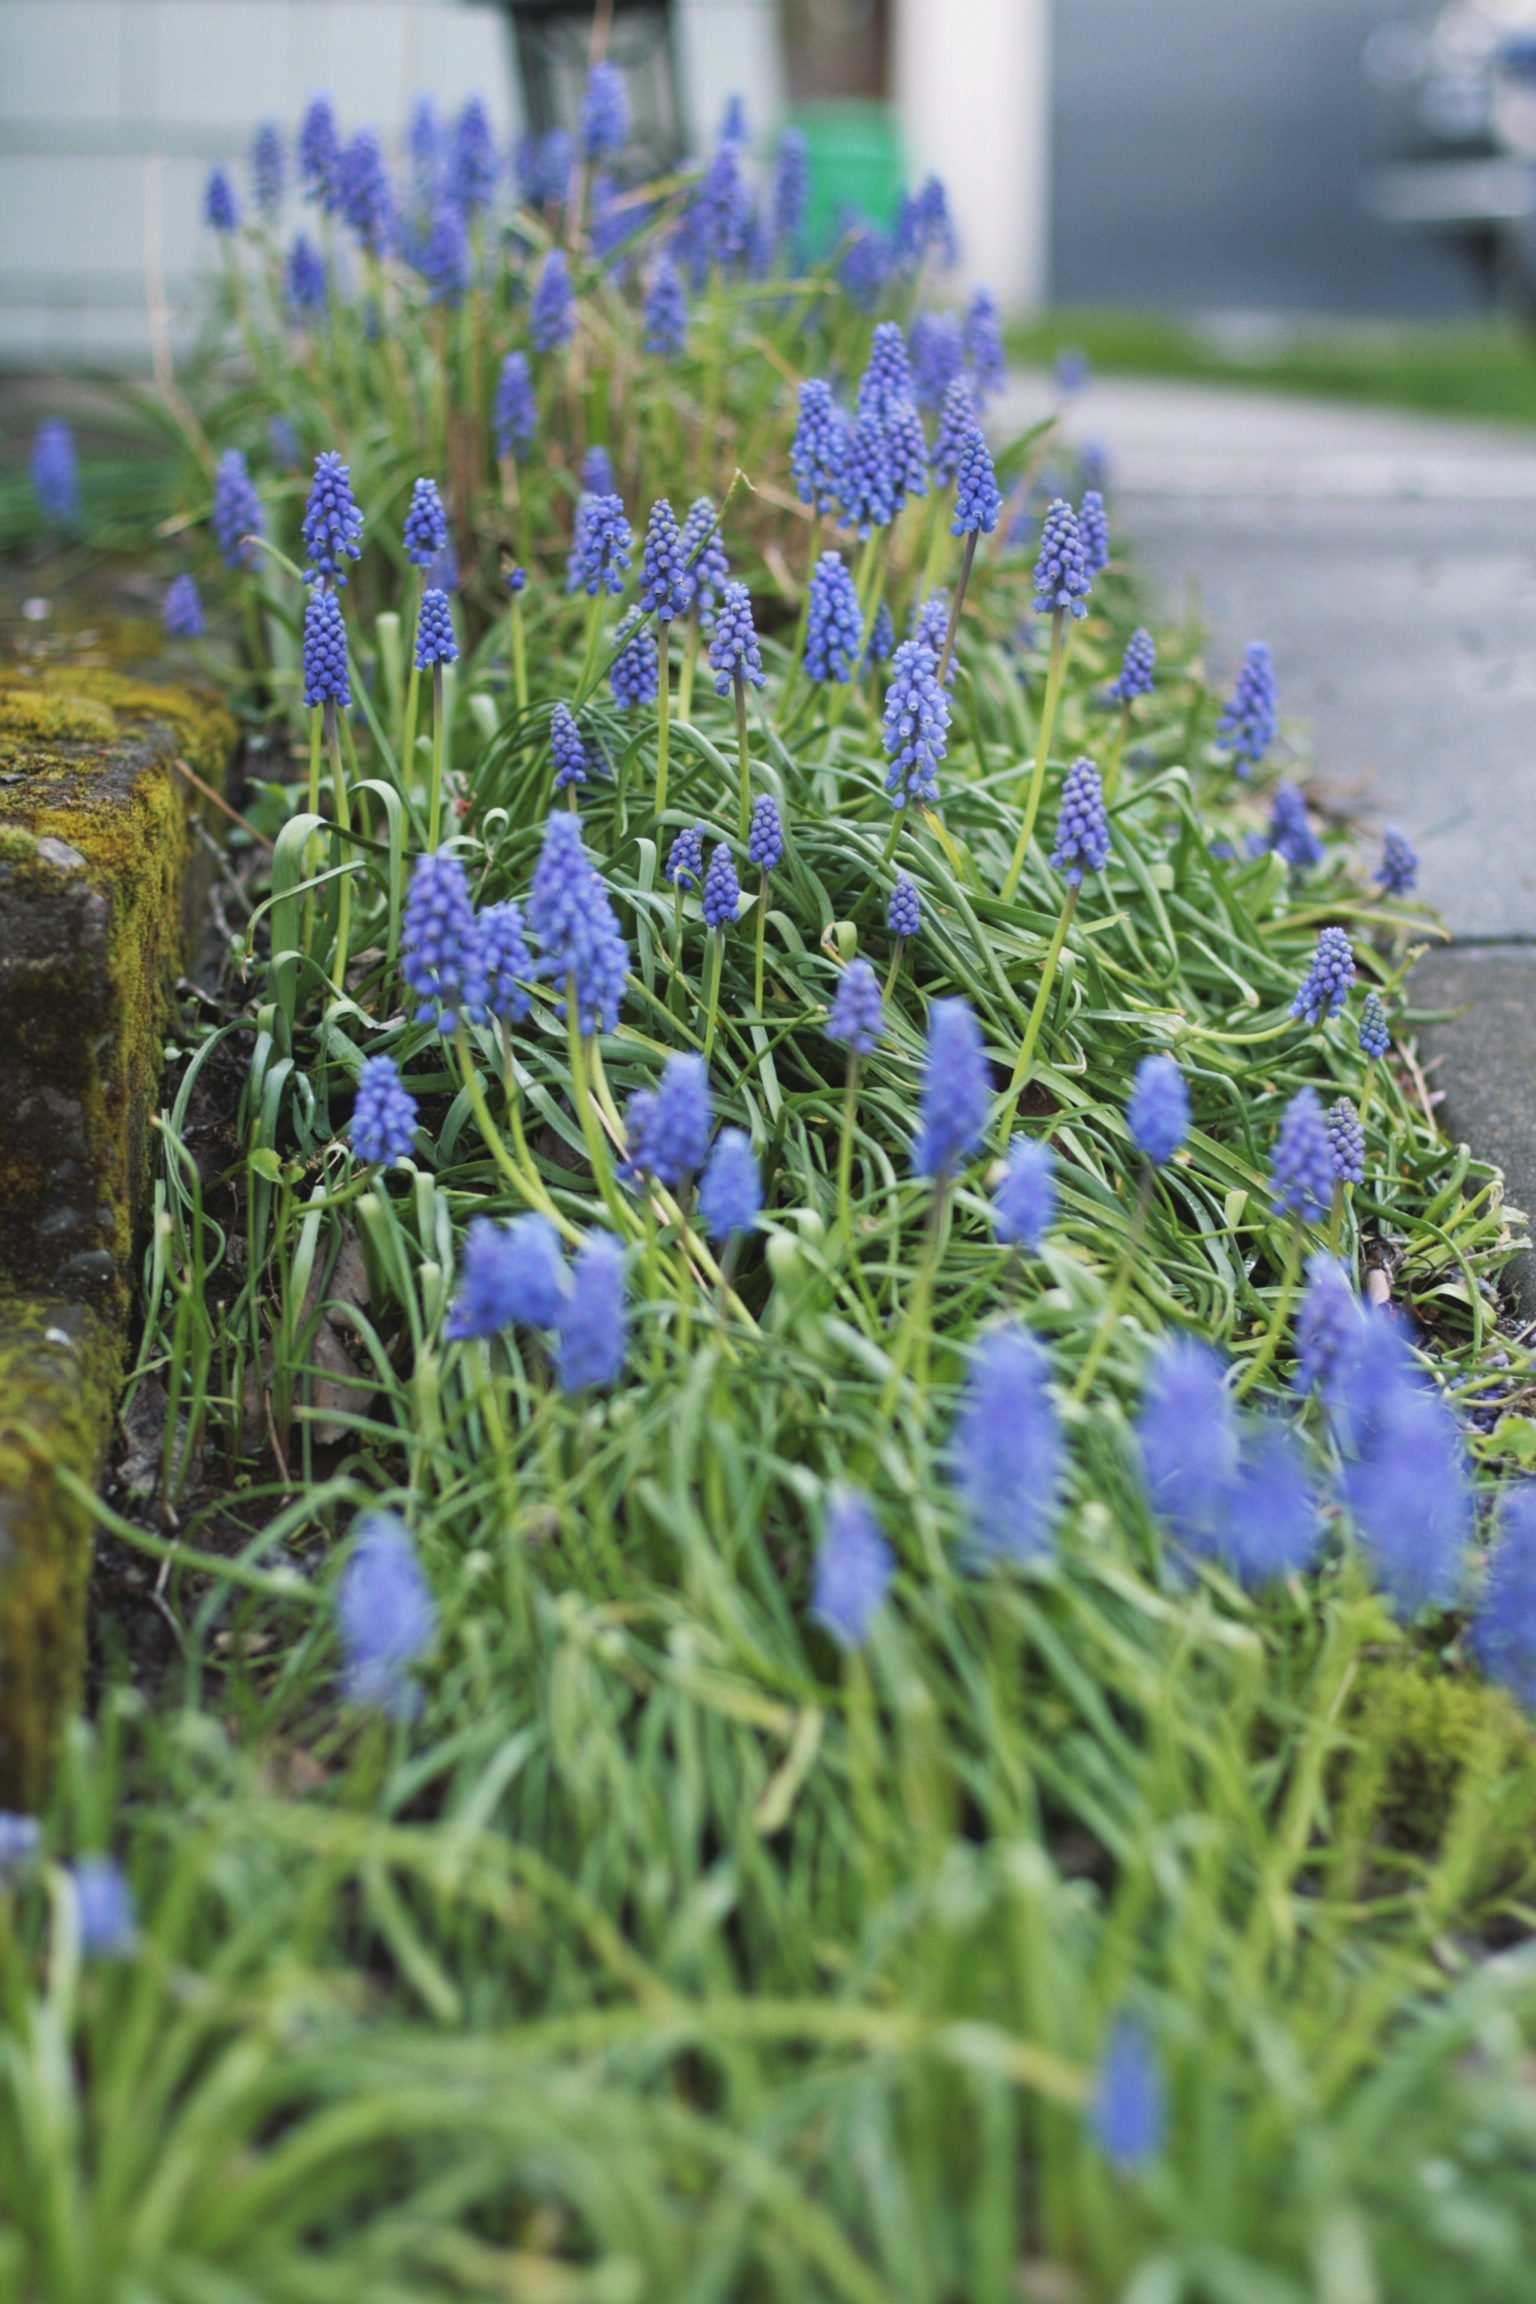 Muscari in our neighbor's walkway